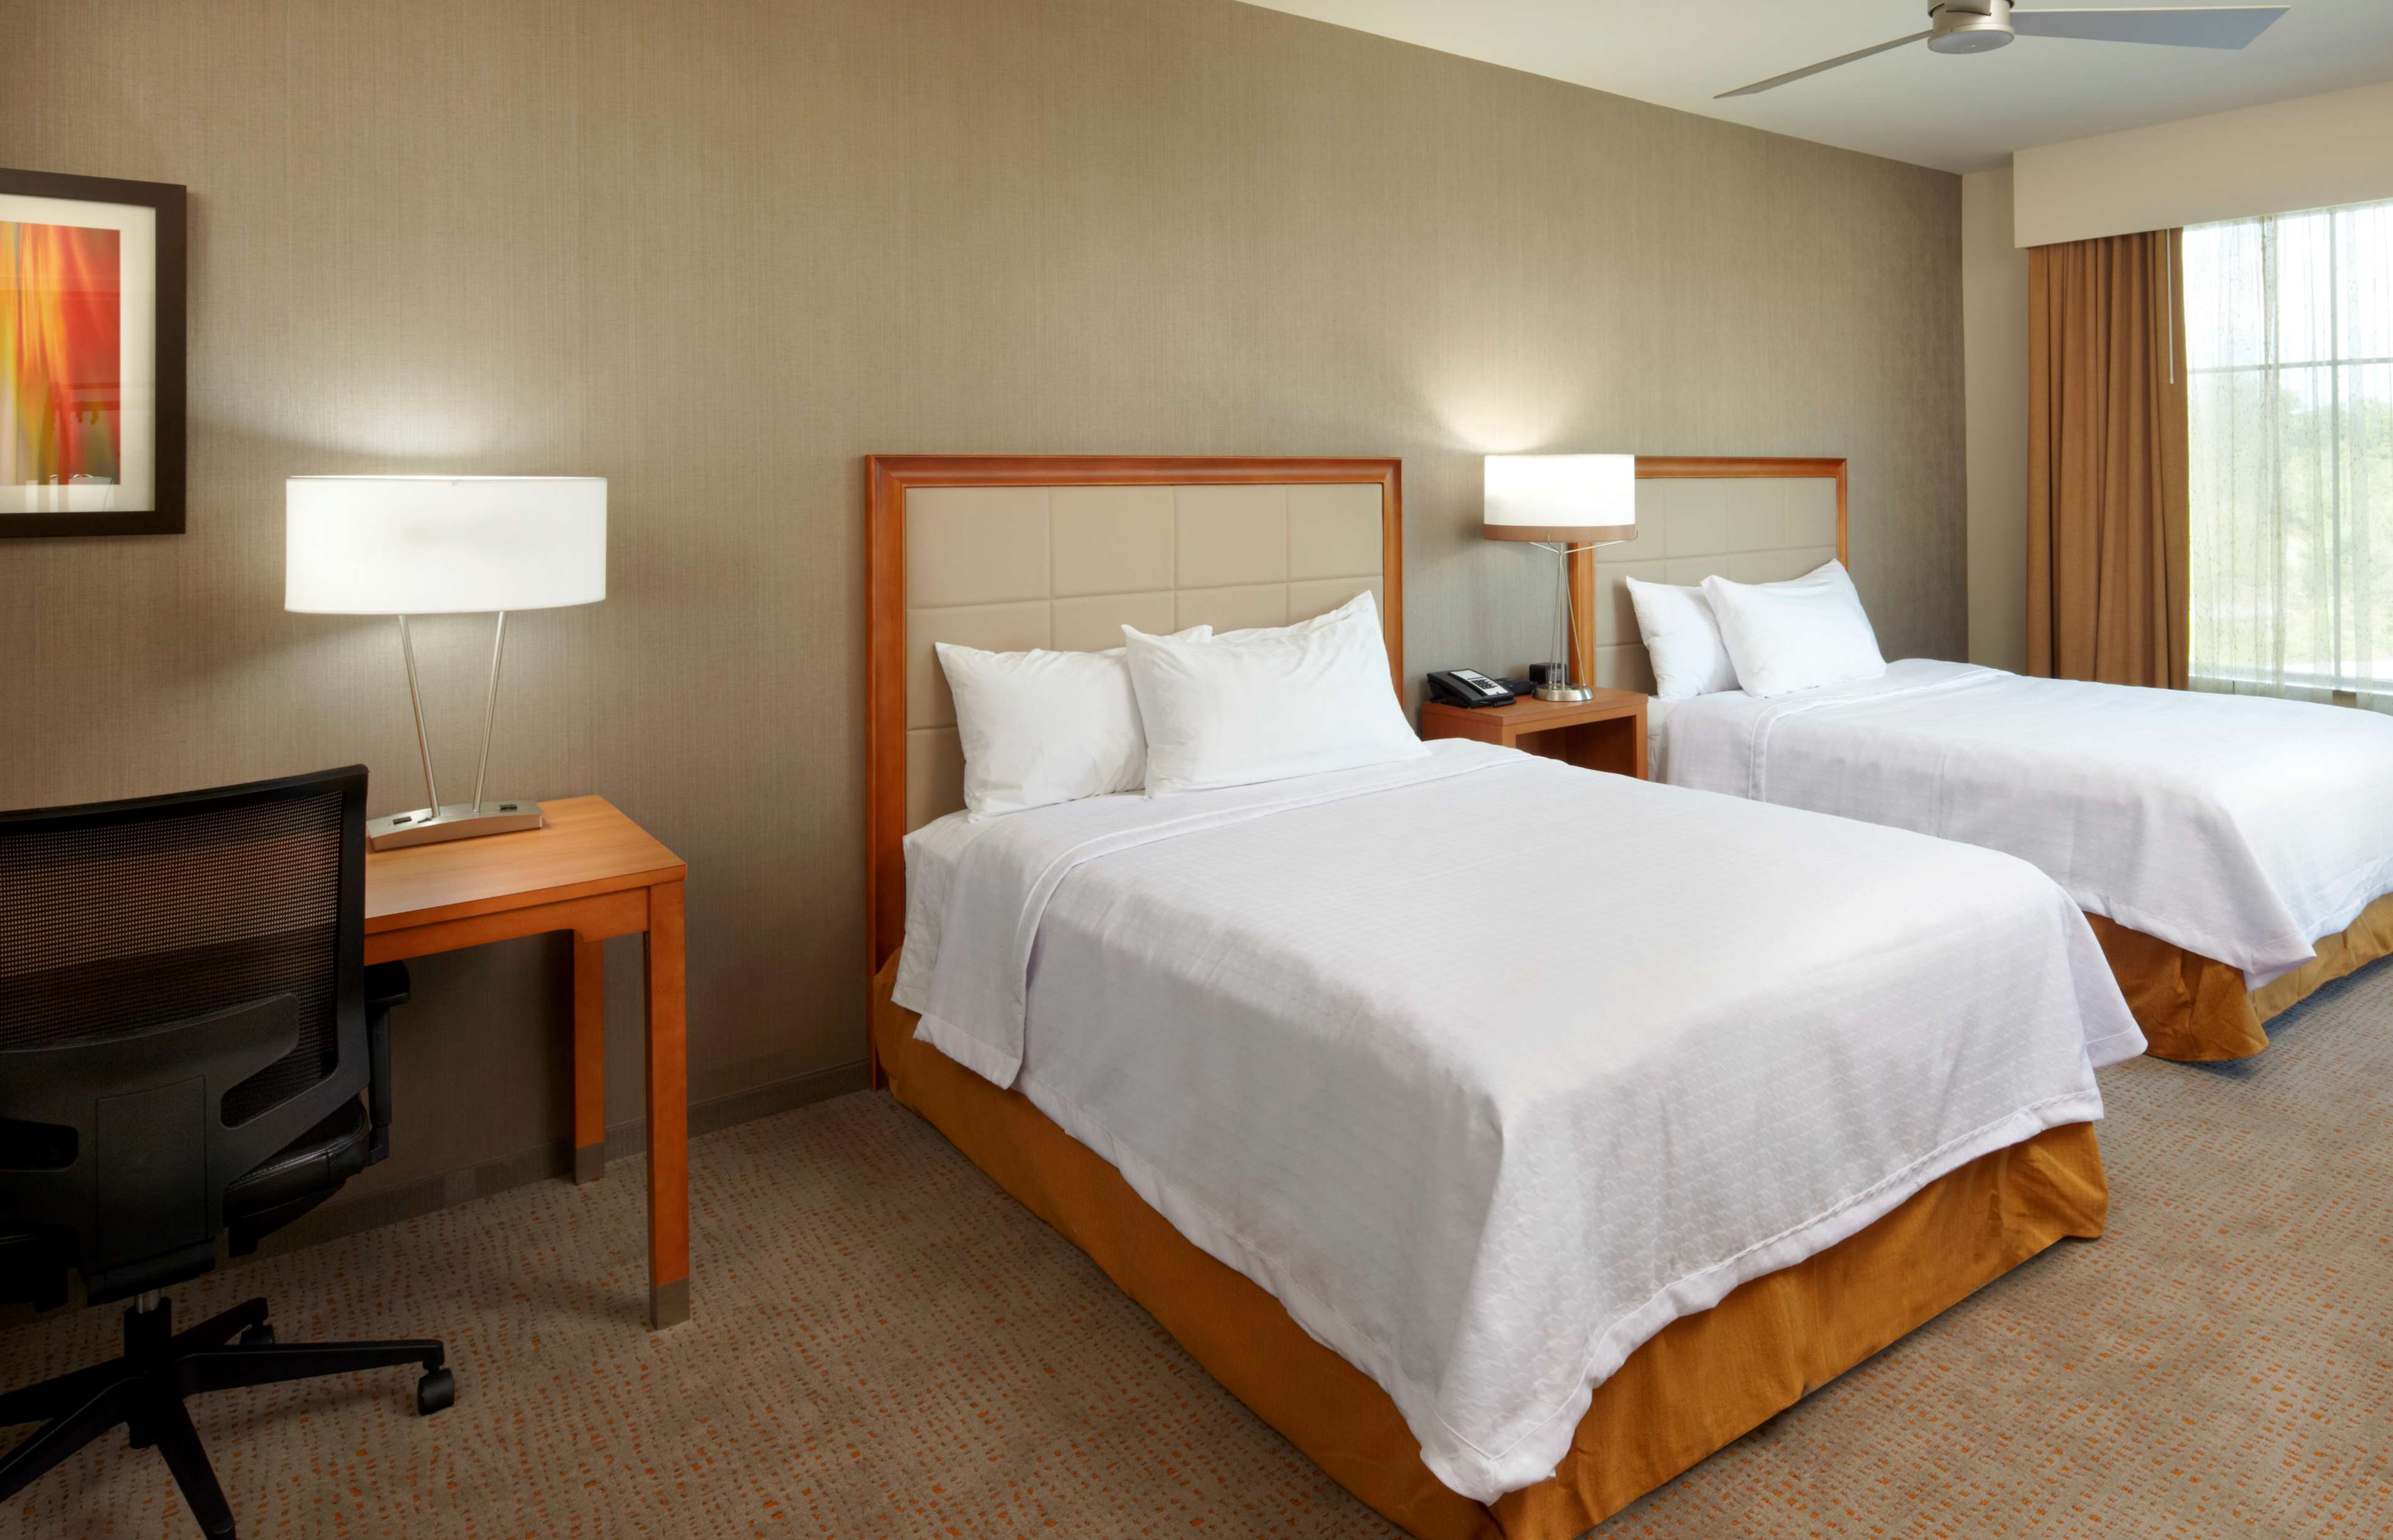 Homewood Suites by Hilton Pittsburgh Airport Robinson Mall Area PA image 12